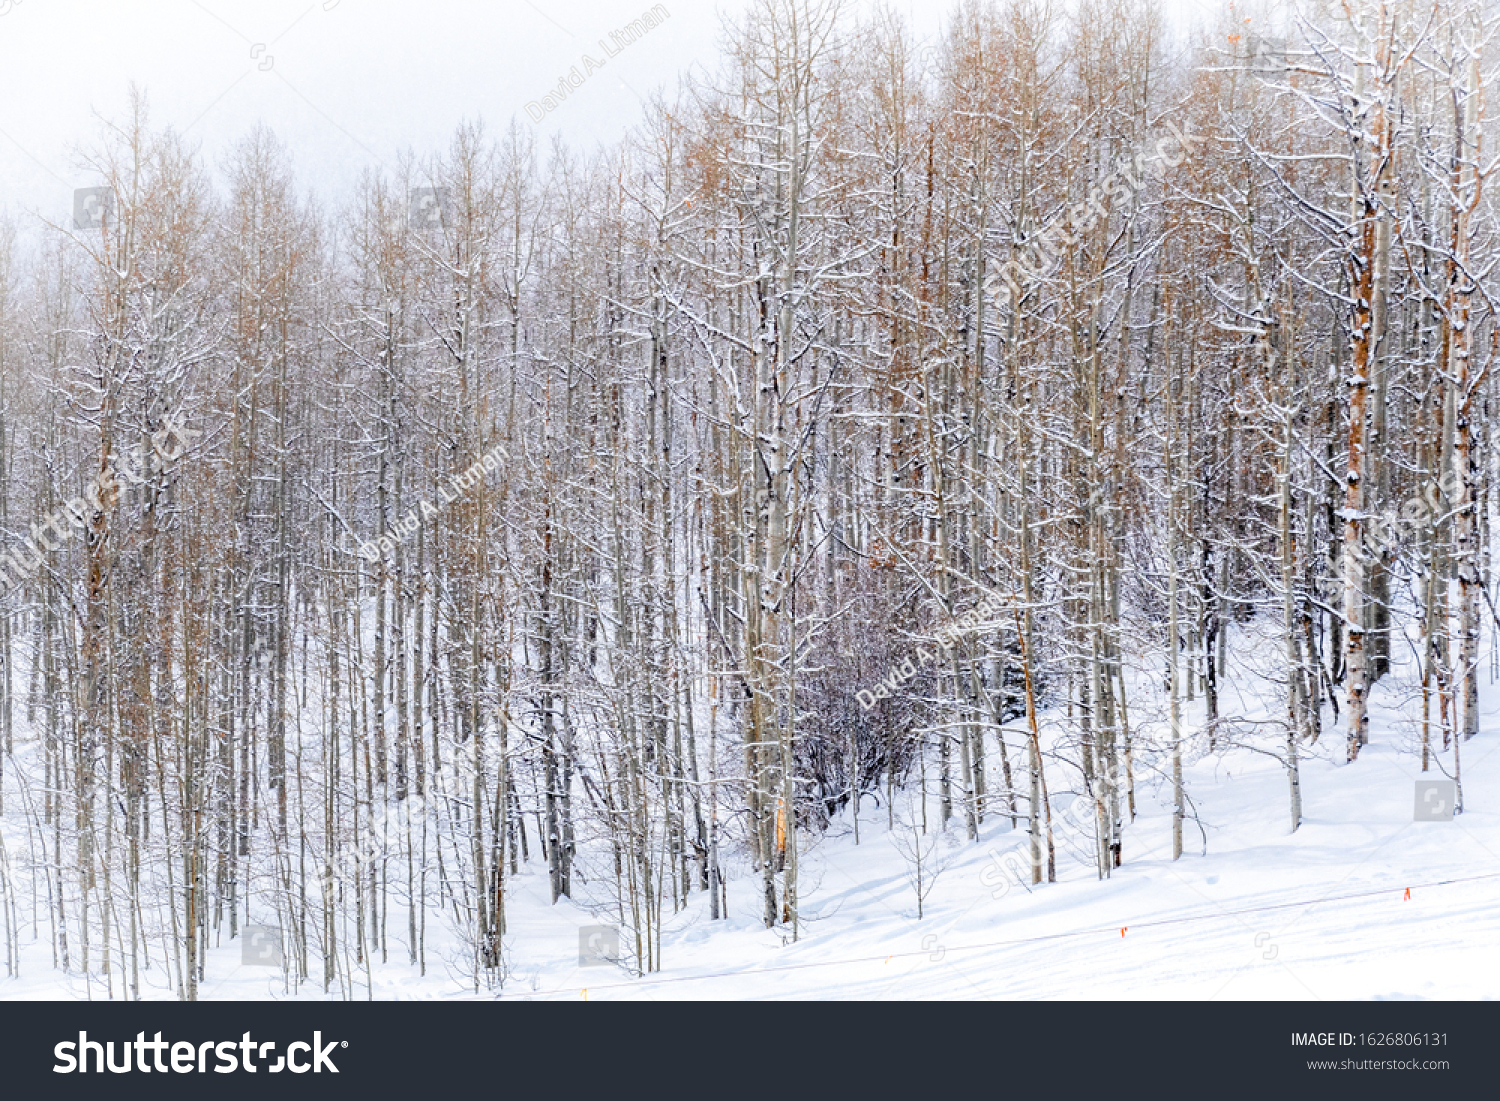 Snow covered aspen trees line the ski slopes of the Aspen Snowmass ski resort, in the Rocky Mountains of Colorado, on a snowy winter day.